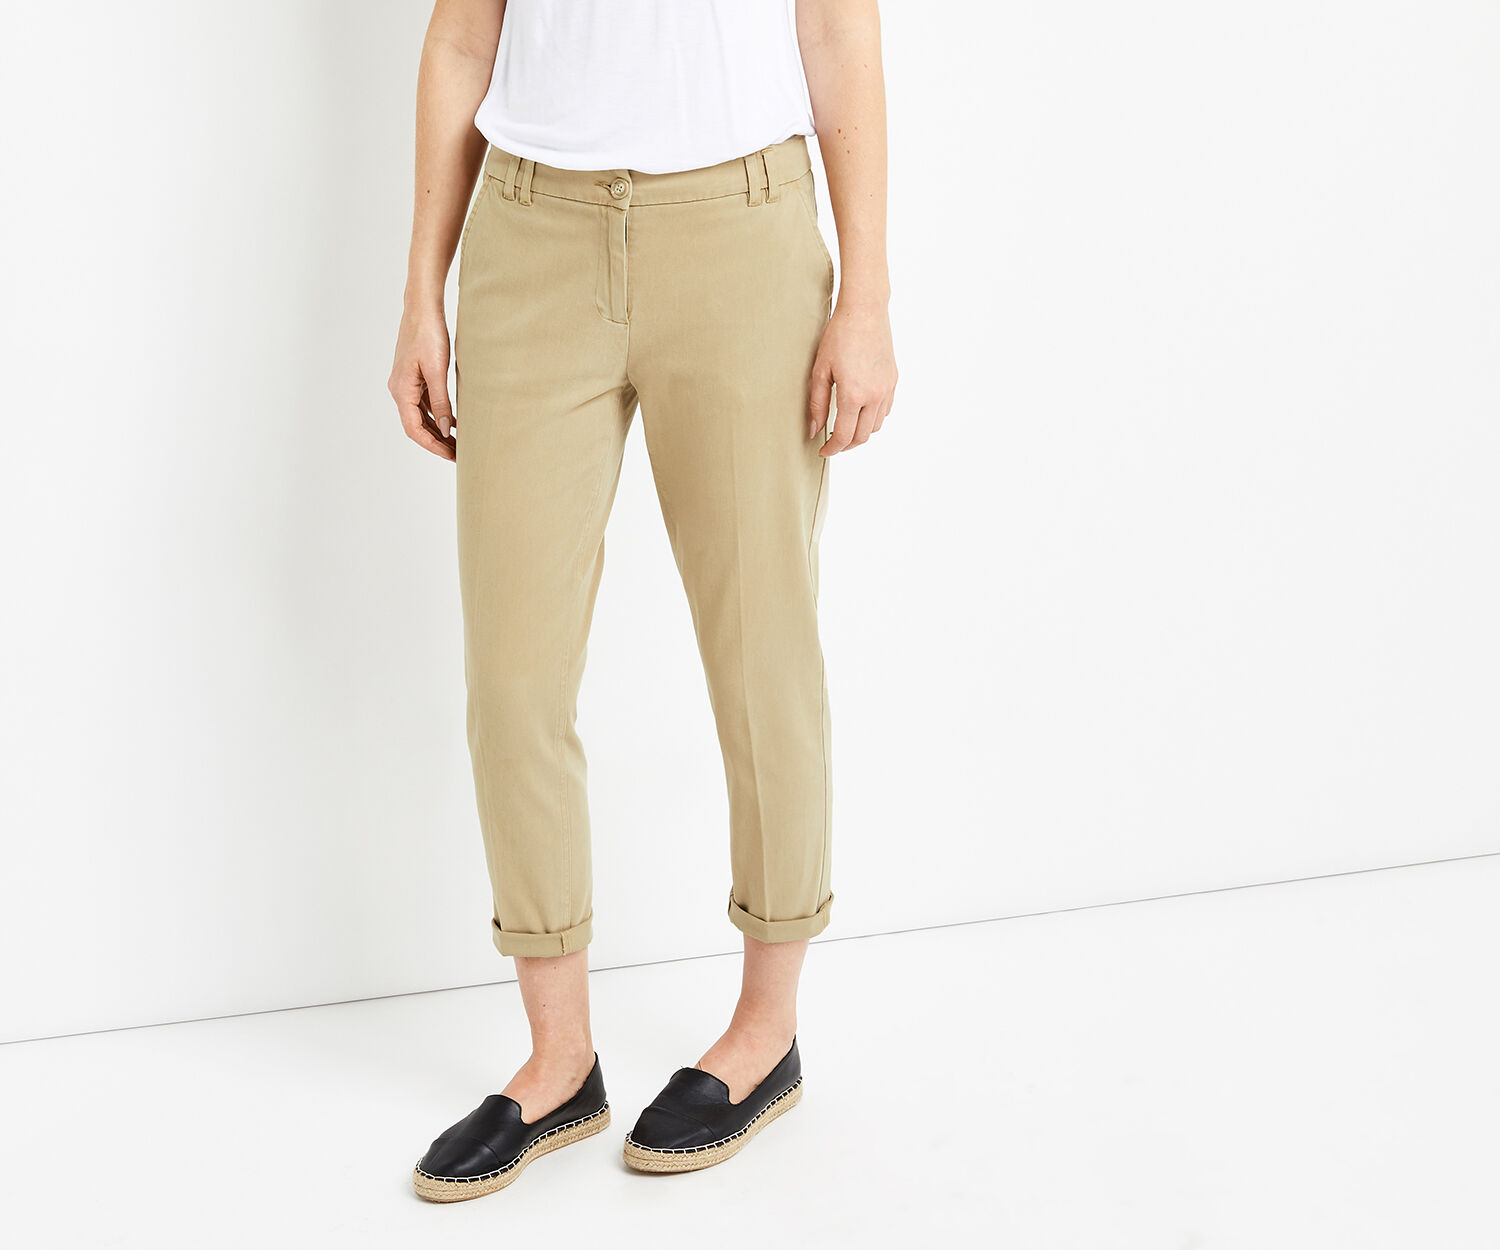 Oasis, SHORTER LENGTH CHINO Mid Neutral 1